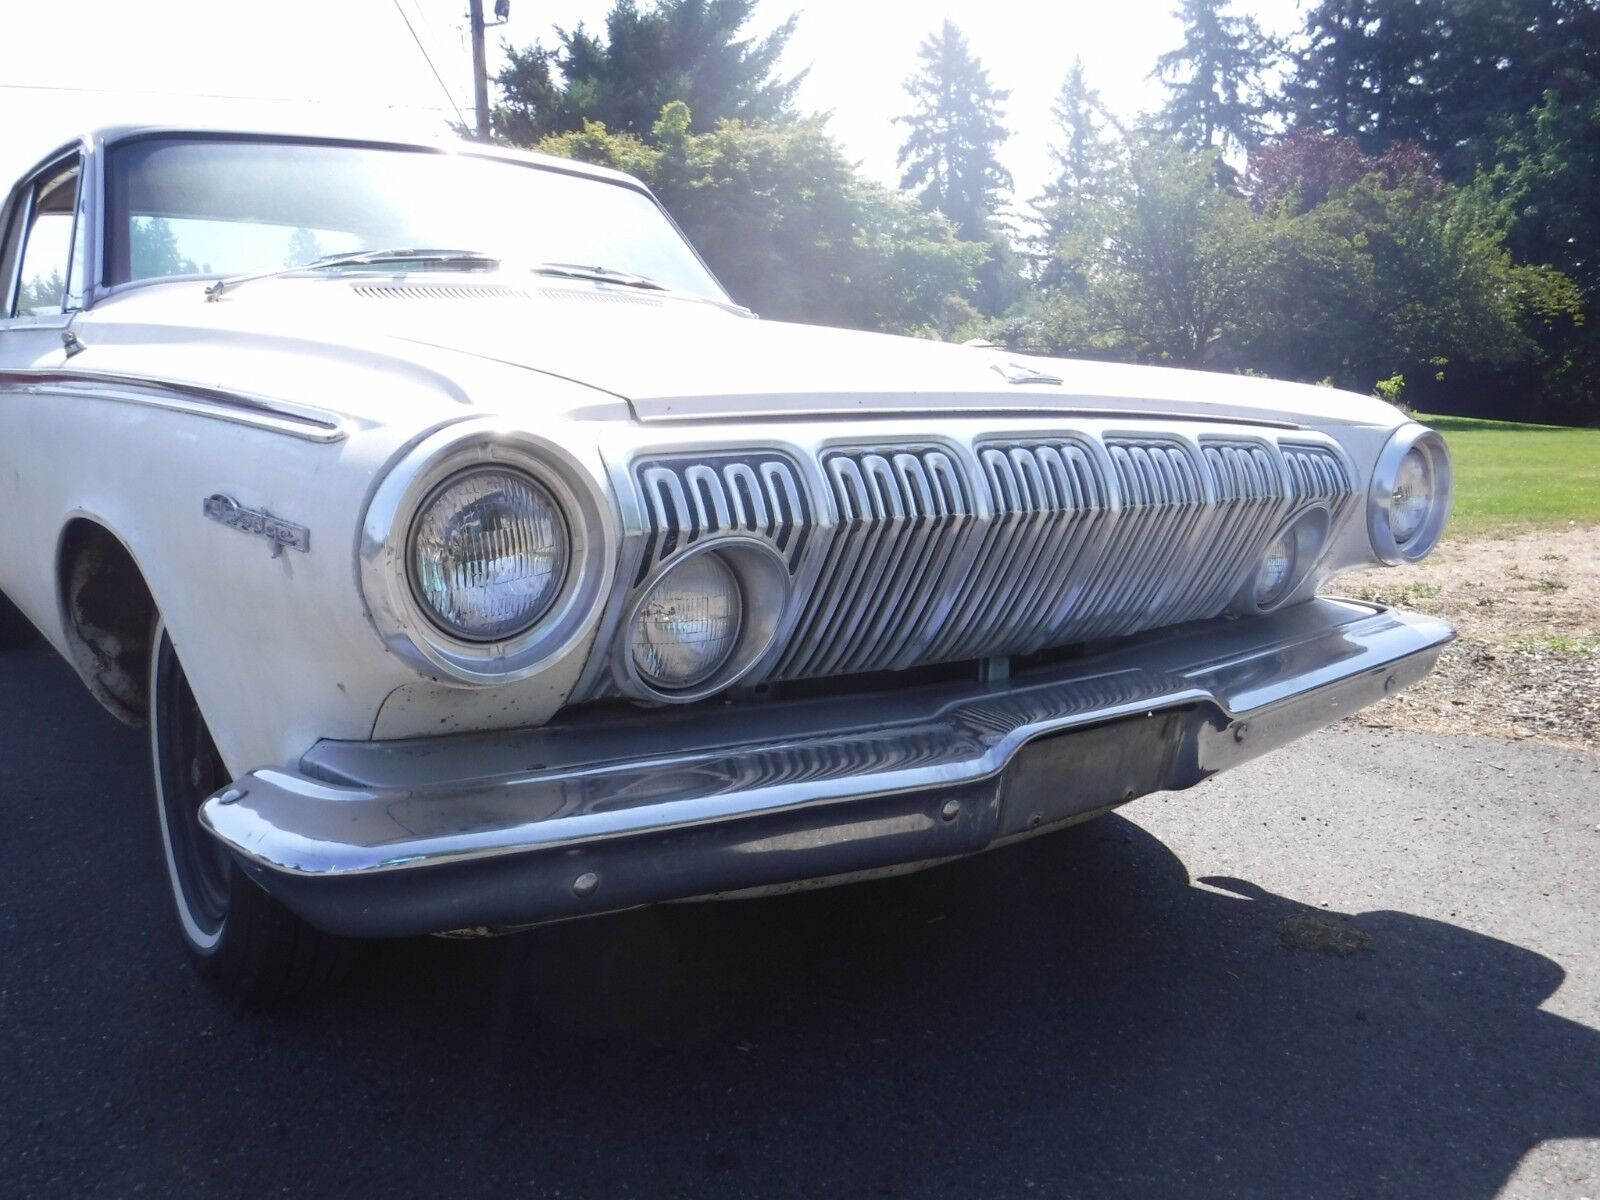 1963 Dodge 440 POLY 318 AT 727 w 8 3/4 RE  1963 Dodge 440 2 door Poly 318 2BBL w 727 push button auto 8 3/4 RE ~DRIVES NICE